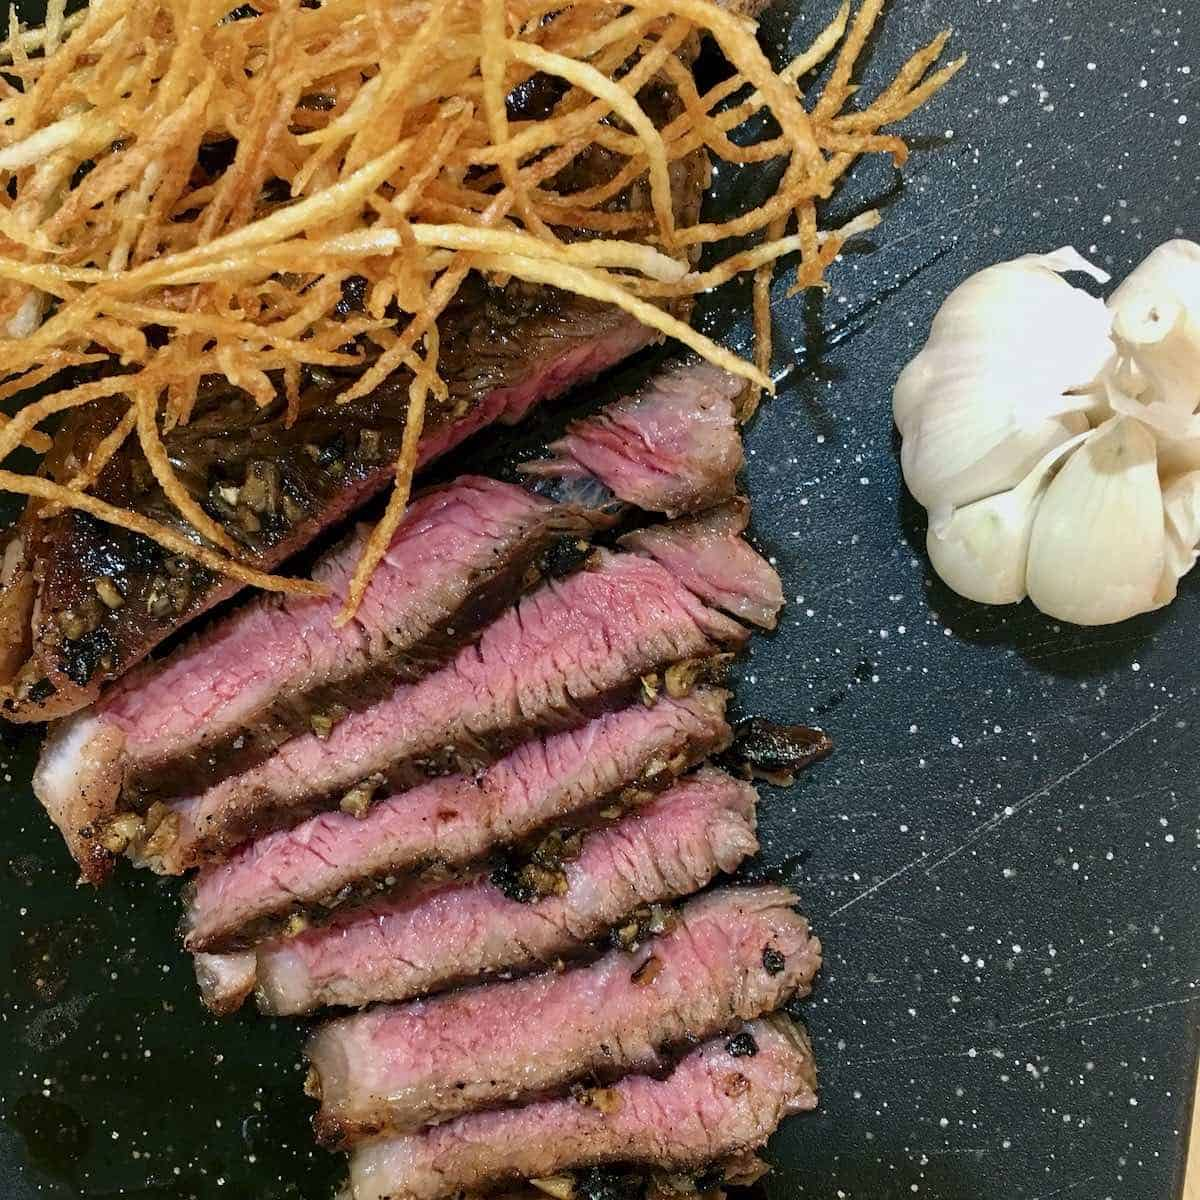 steak and fried shoestring potatoes